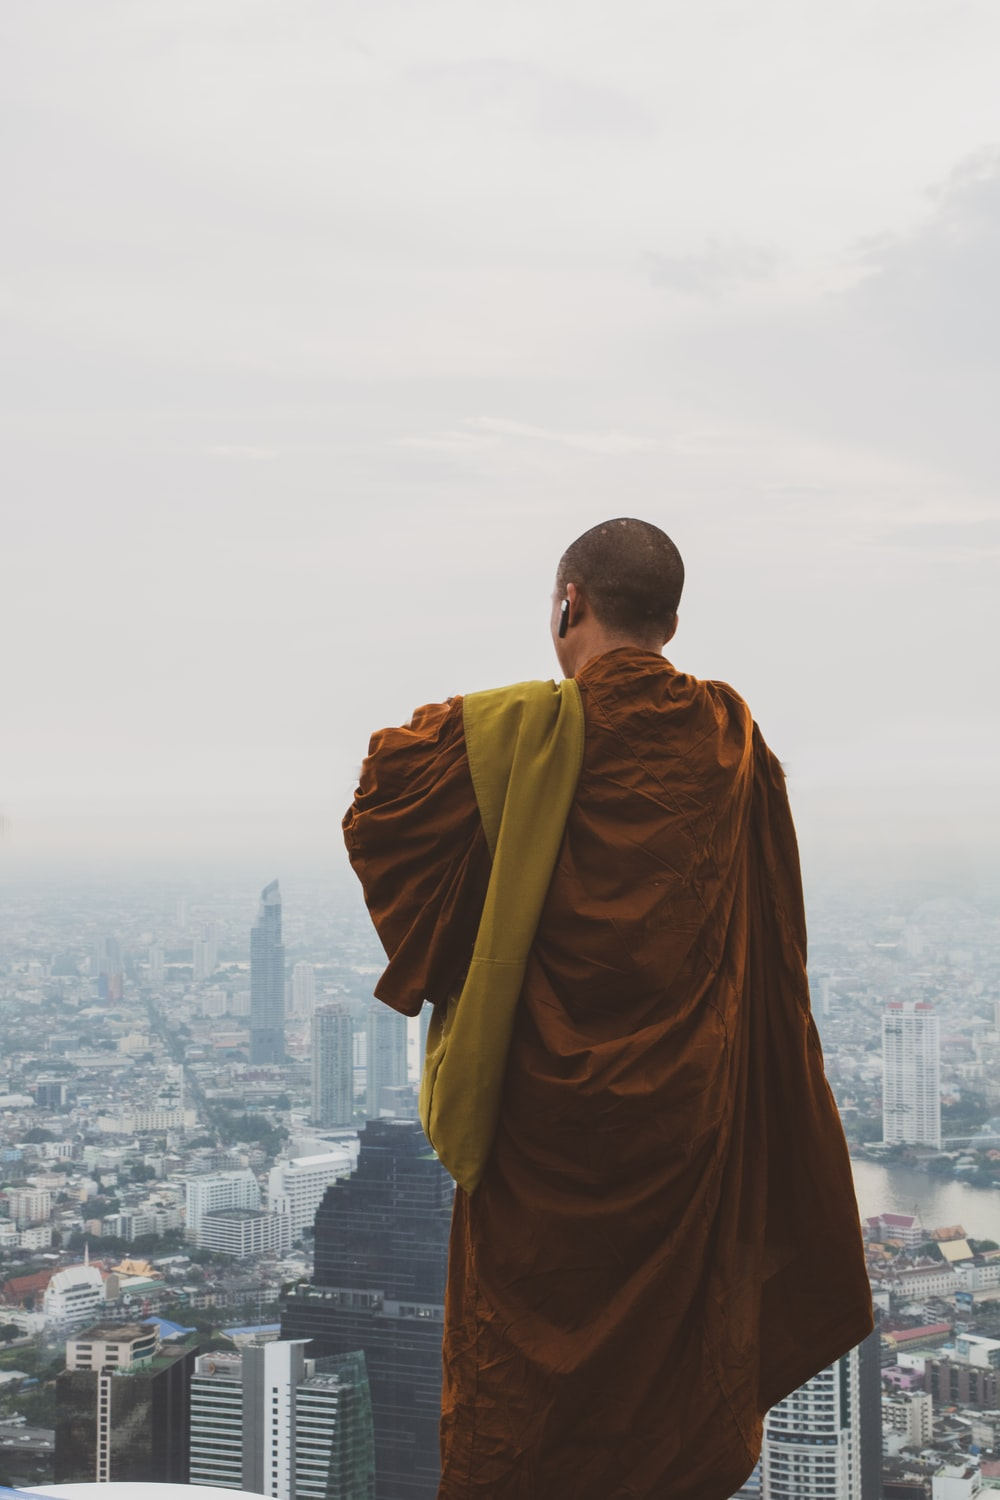 man in brown robe standing on top of building during daytime